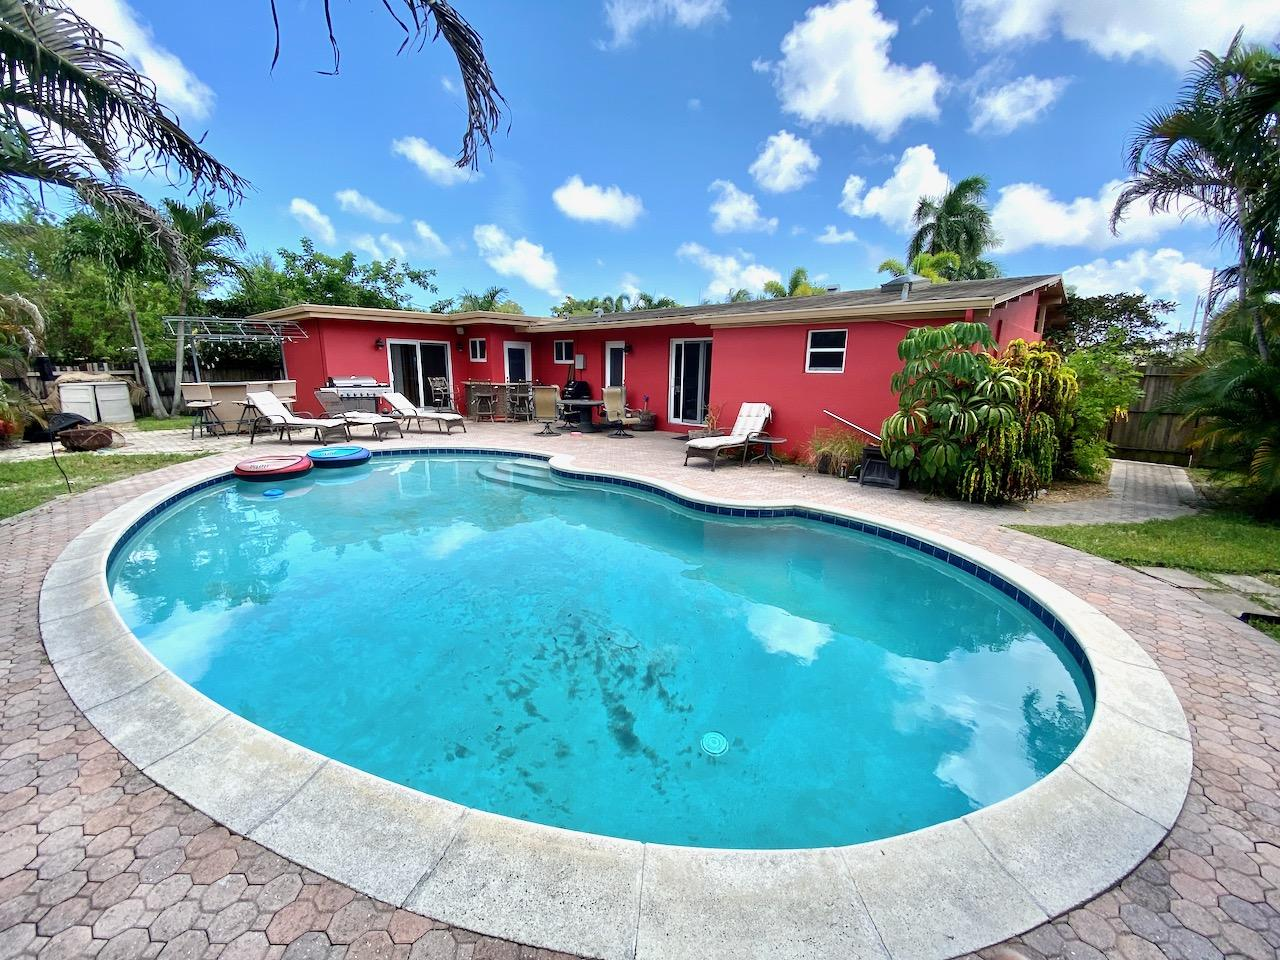 819 NW 26th Street, Wilton Manors, FL 33311